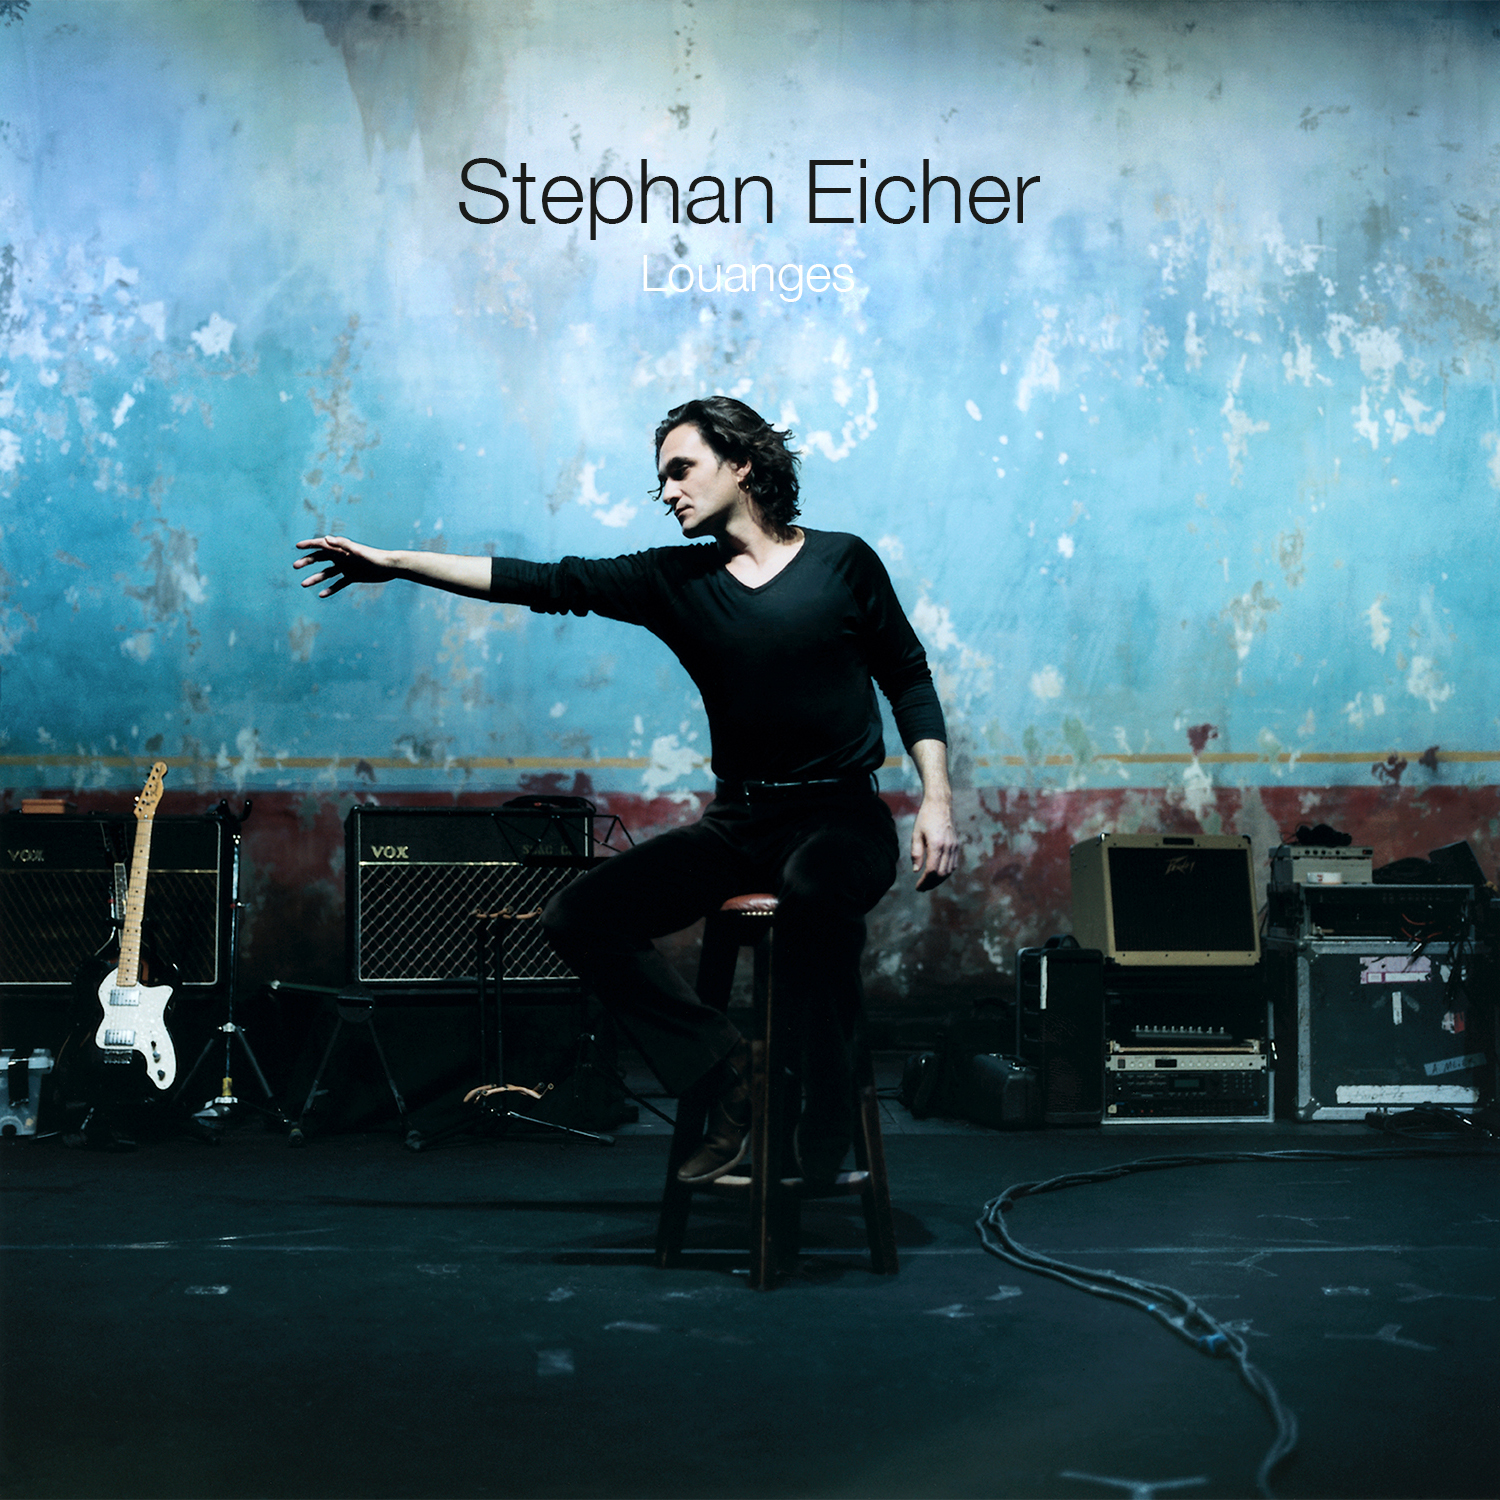 Stephan Eicher / Louanges